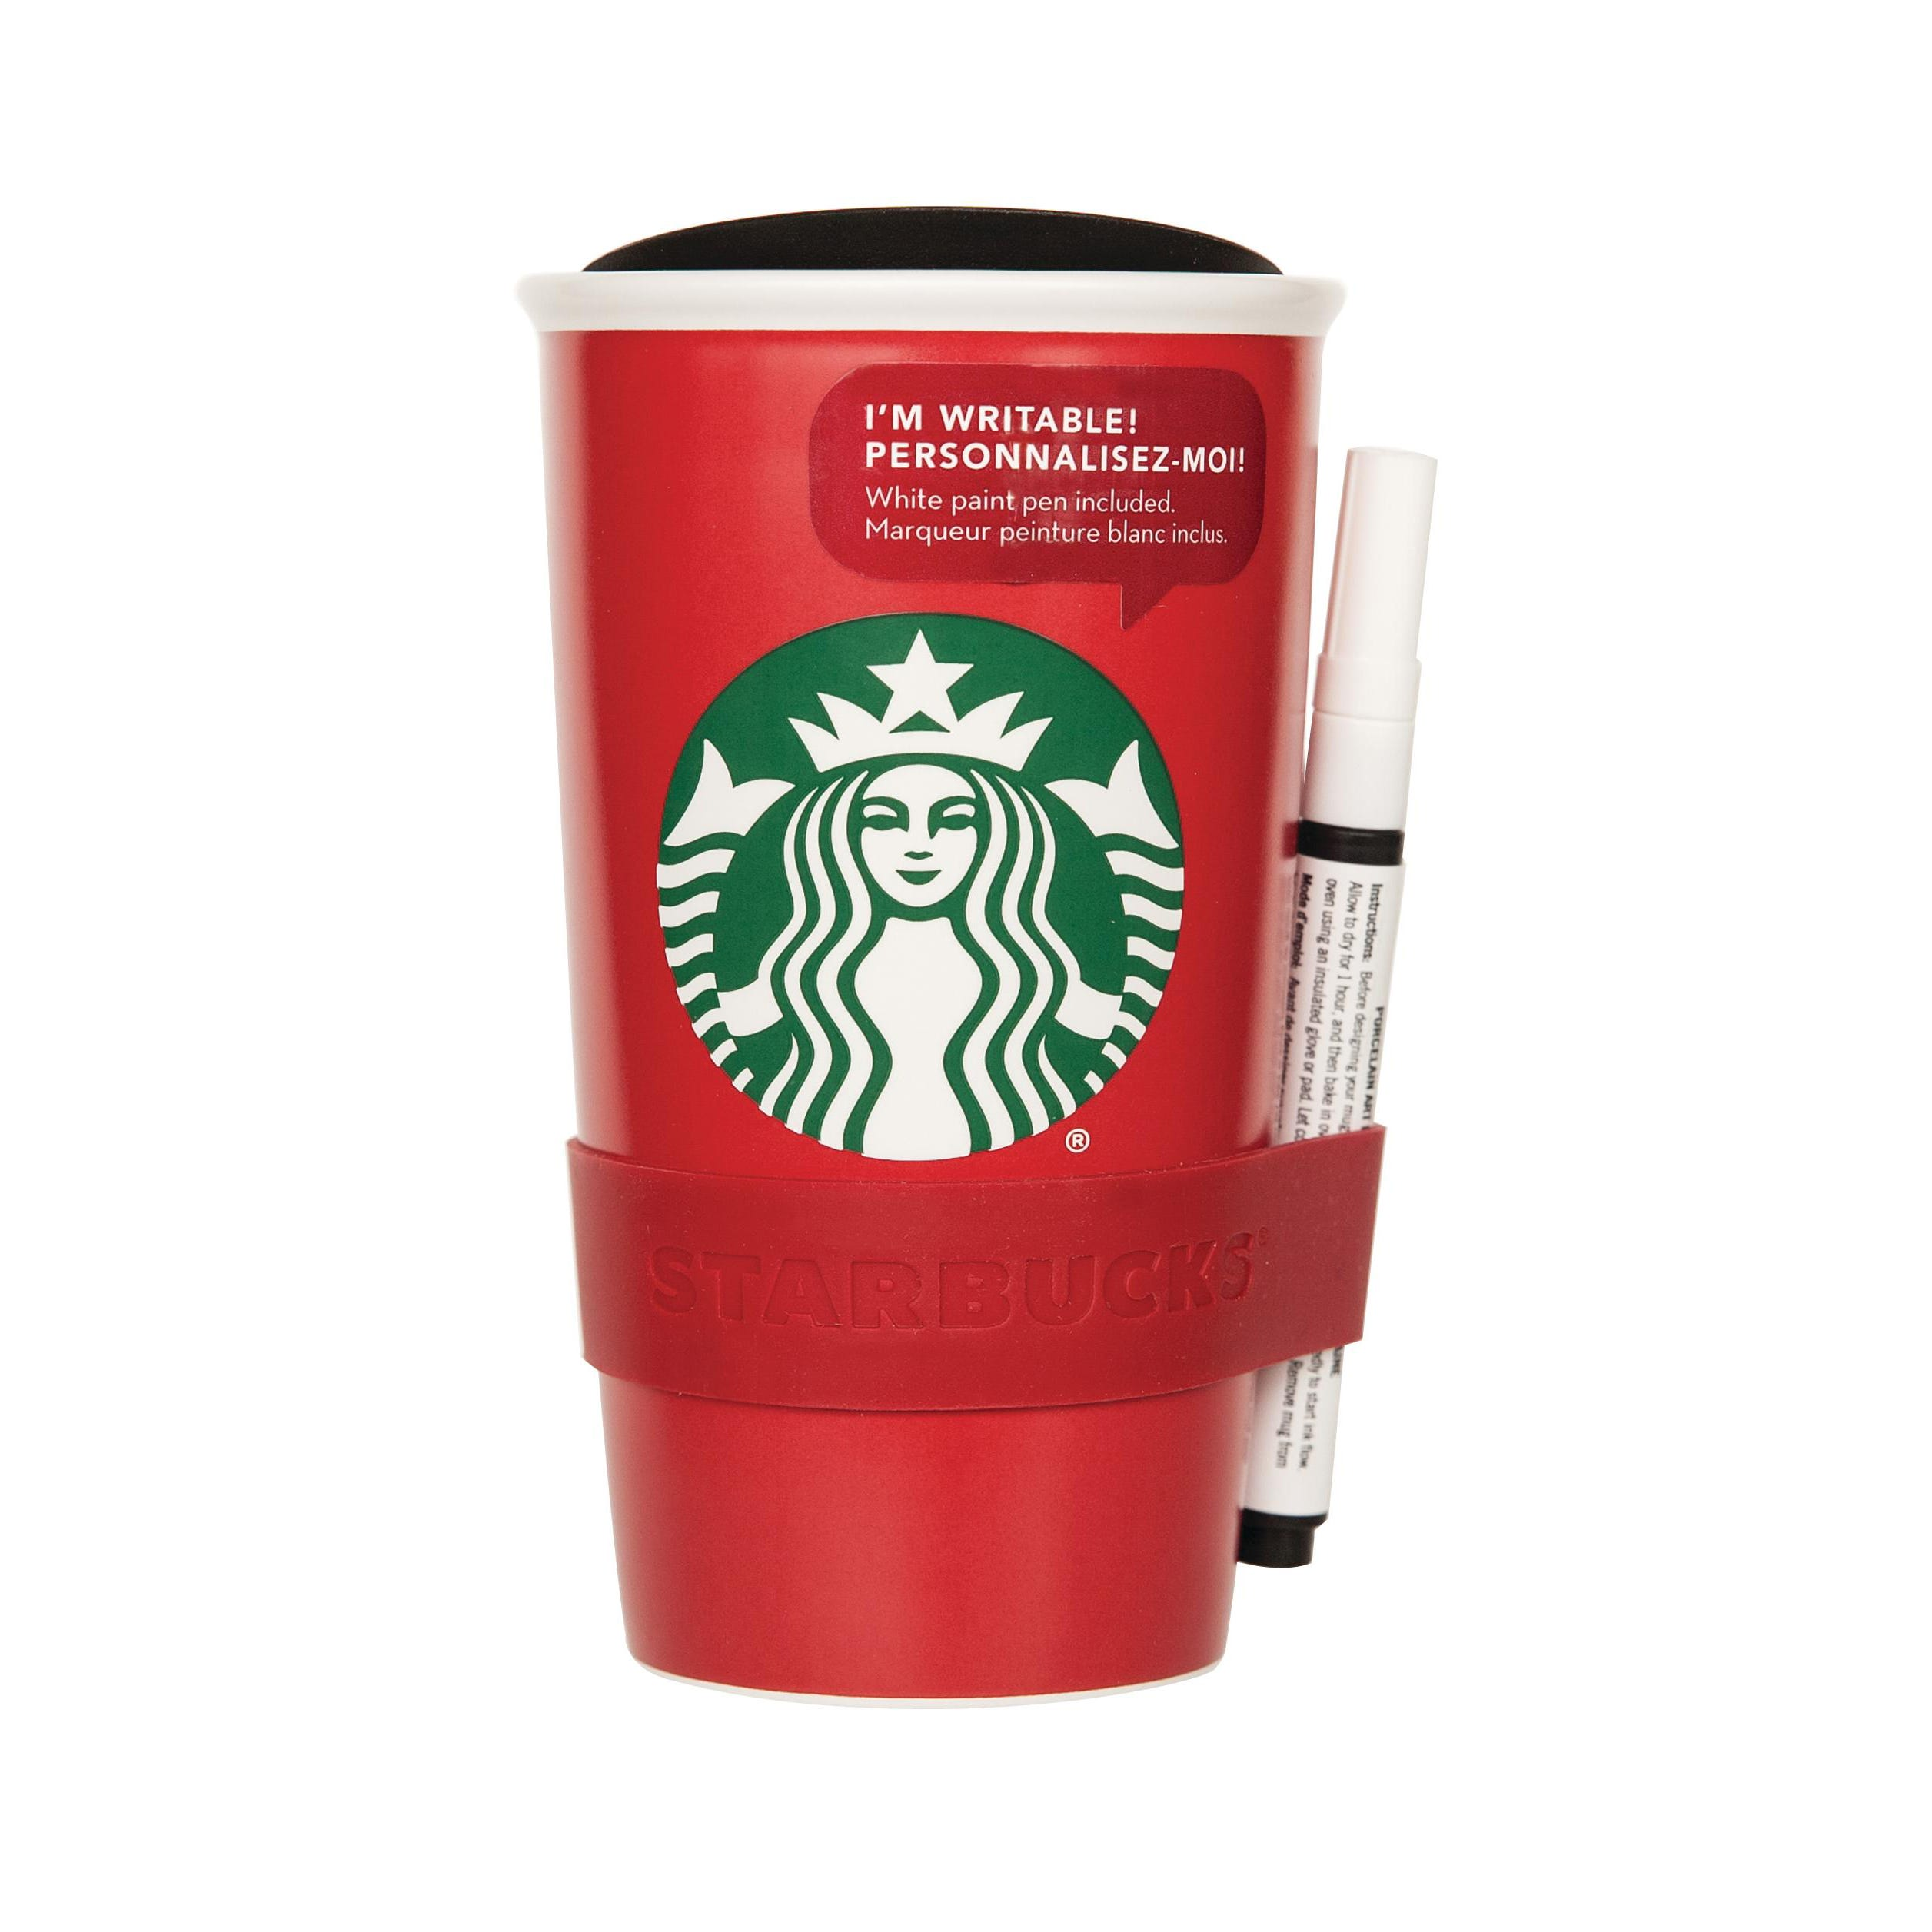 Holiday 2016 2016 Holiday Collection Collection Starbucks Starbucks Holiday Starbucks Collection Starbucks Holiday 2016 2016 9DH2YWeEIb